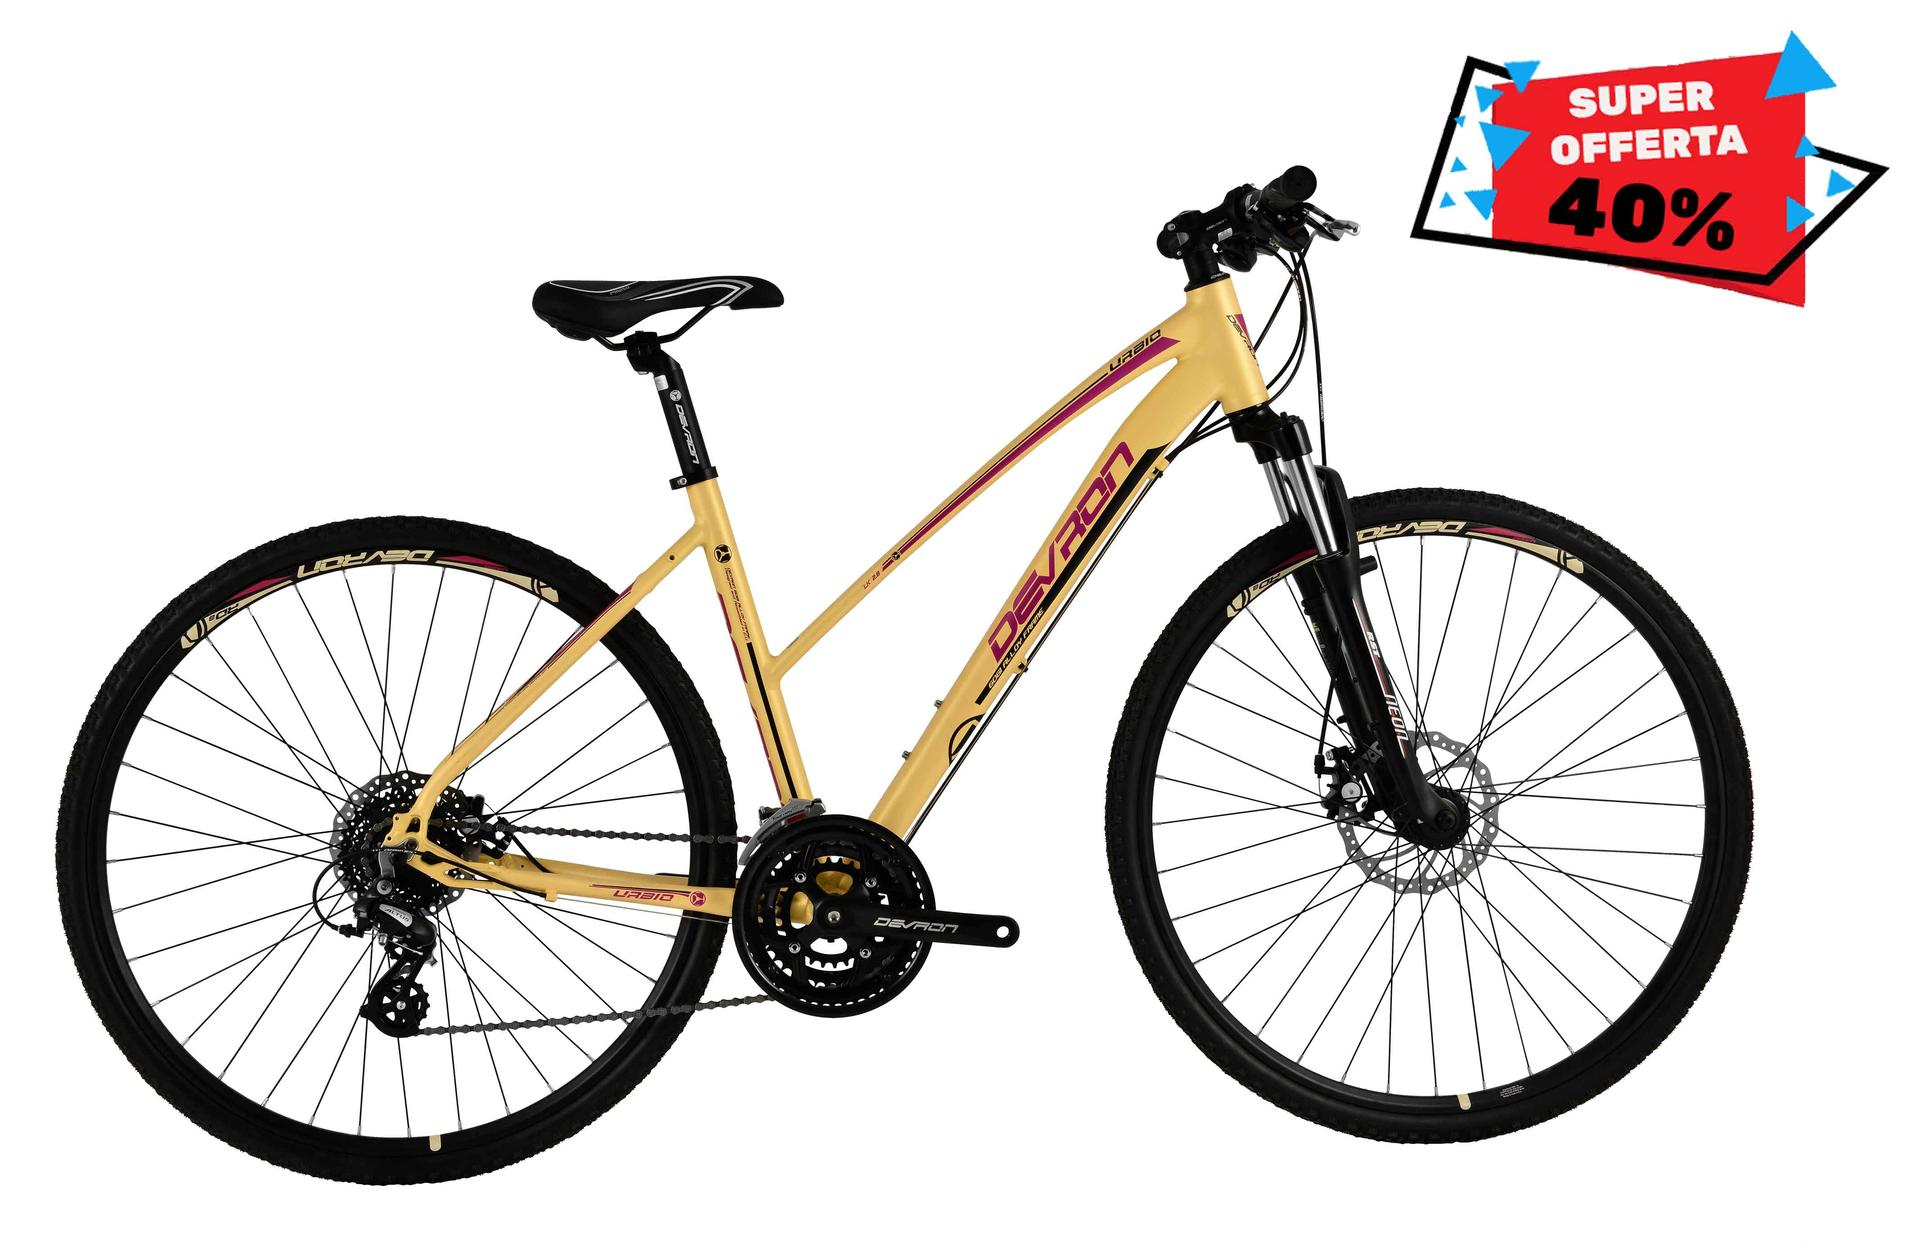 Bicicletta donna da cross Devron Lady U.Cros.LK2.8 Mandarin Dream 480 mm